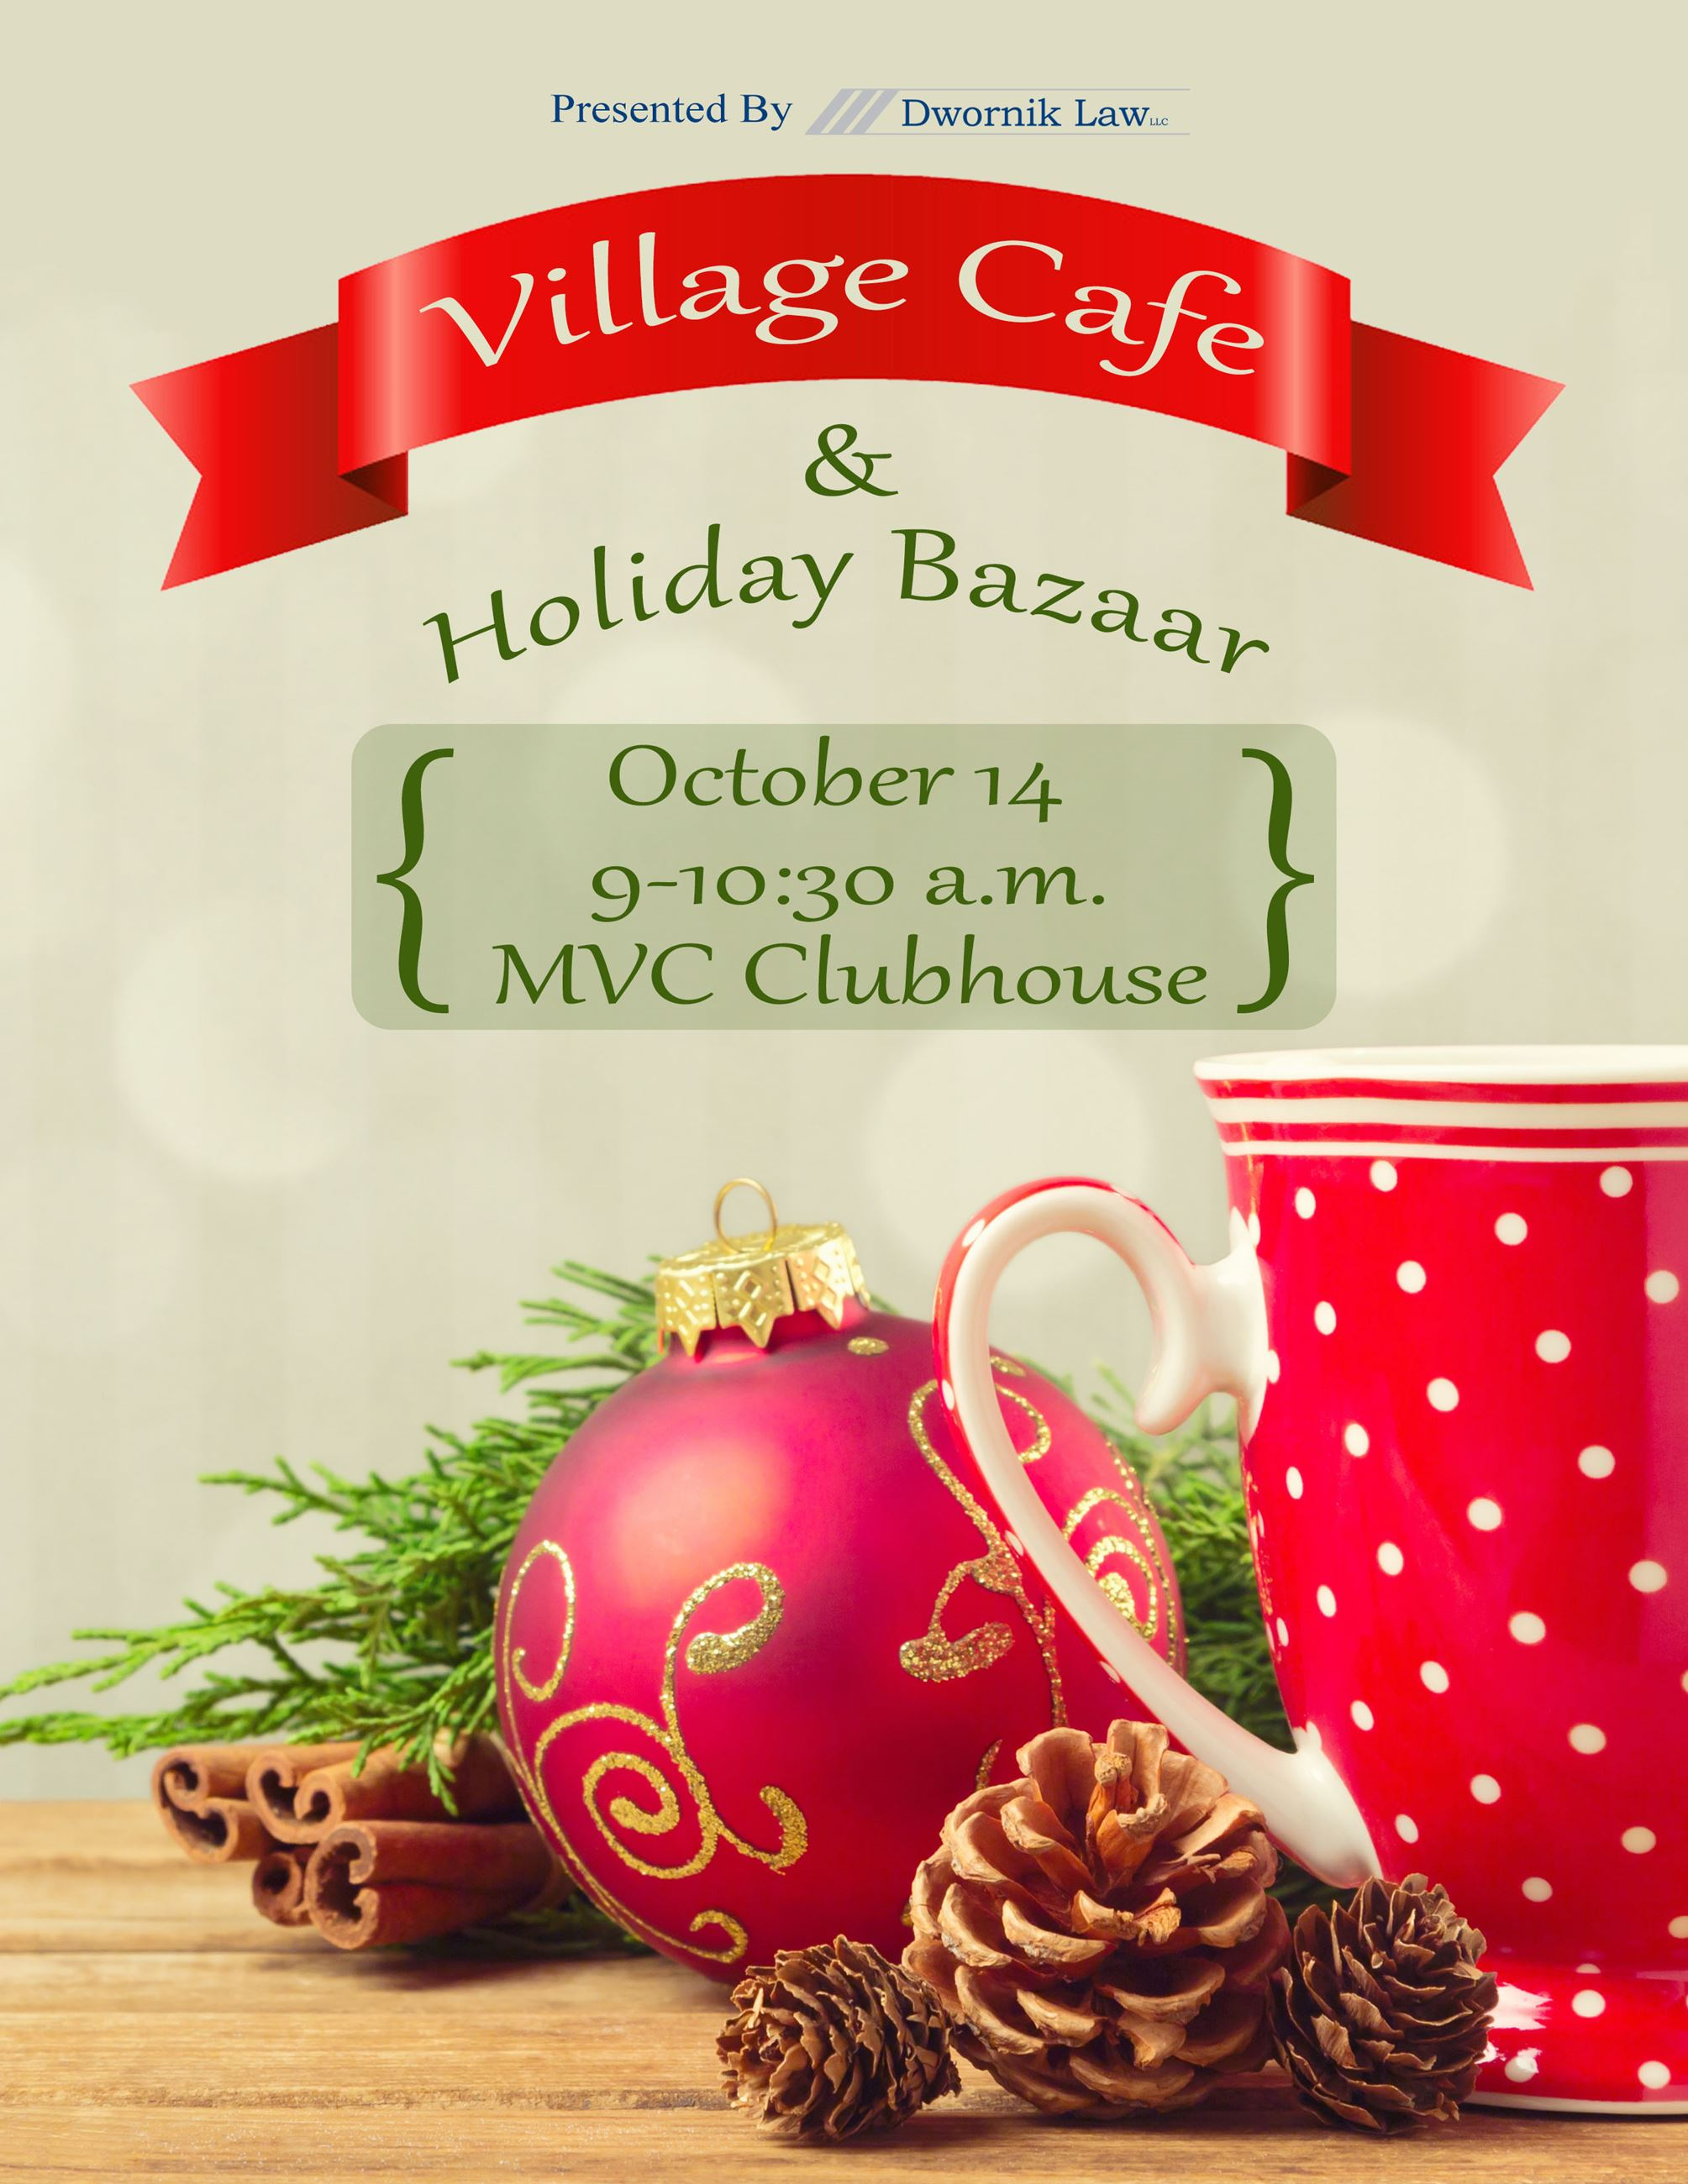 Village Cafe and Holiday Bazaar